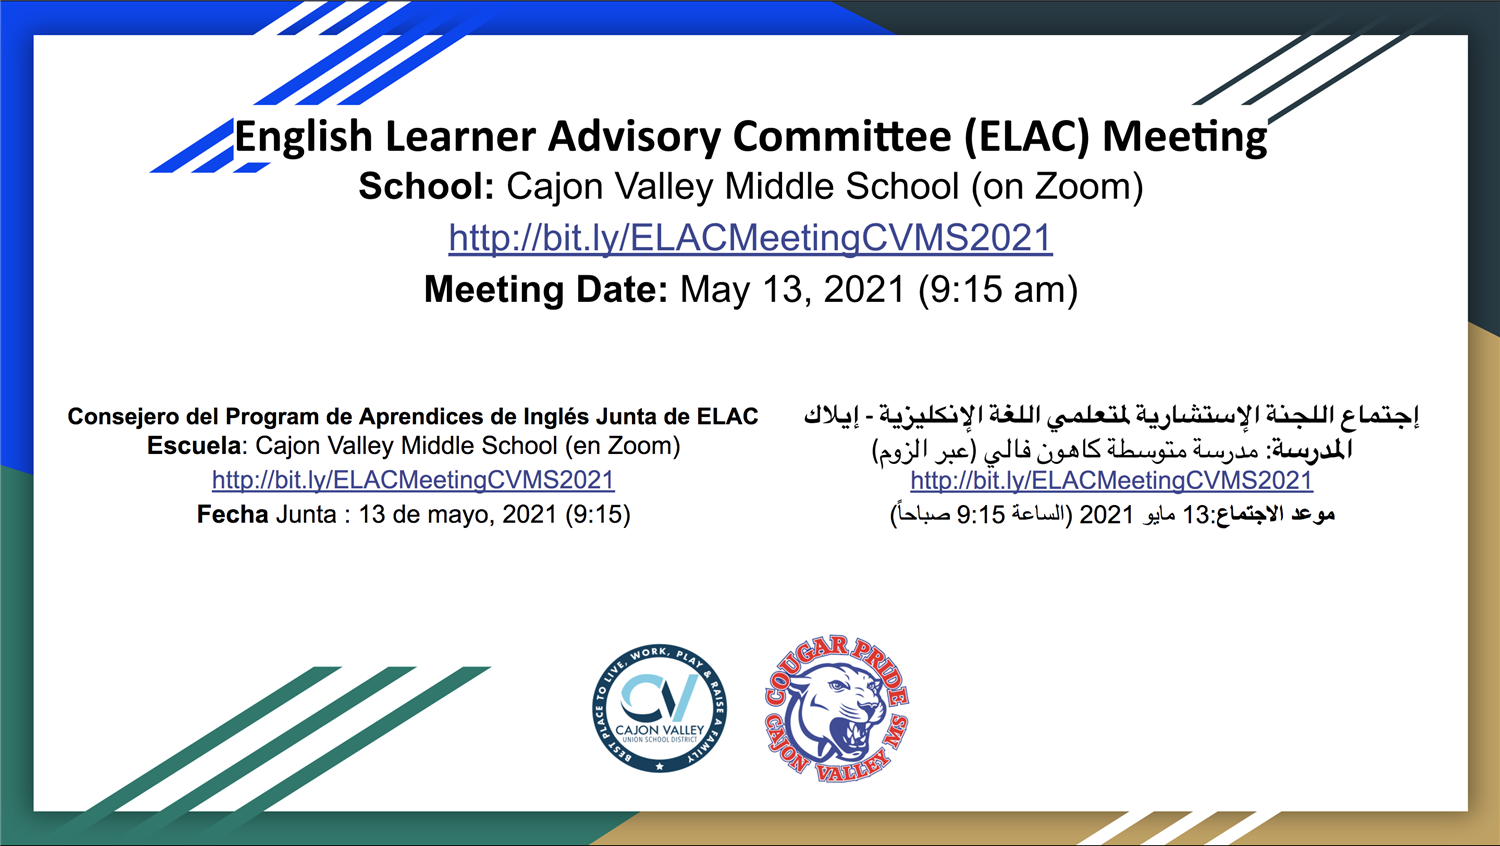 ELAC Meeting on THURSDAY, 5/13 @ 9:15